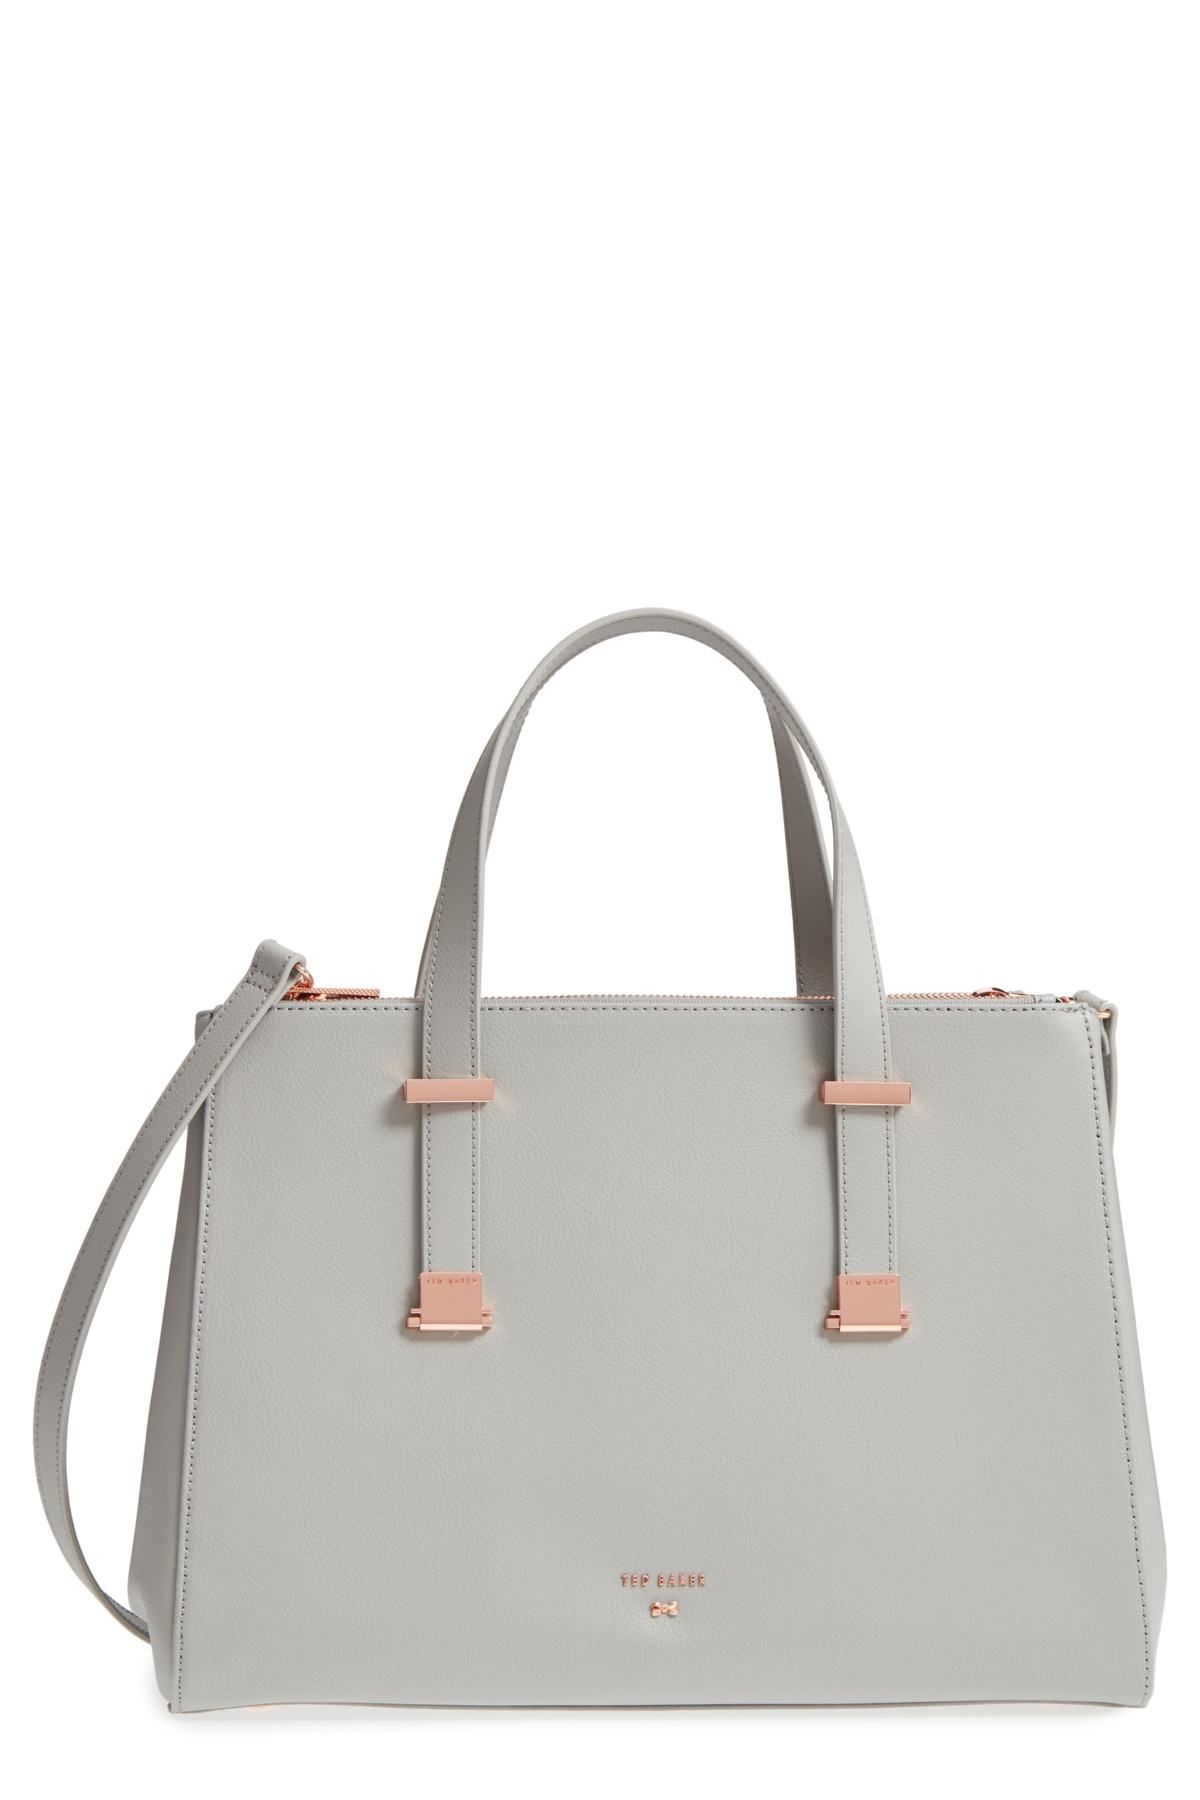 6fb1f60e73 Aminaa Large Adjustable Handle Leather Shopper by Ted Baker London on  @nordstrom_rack